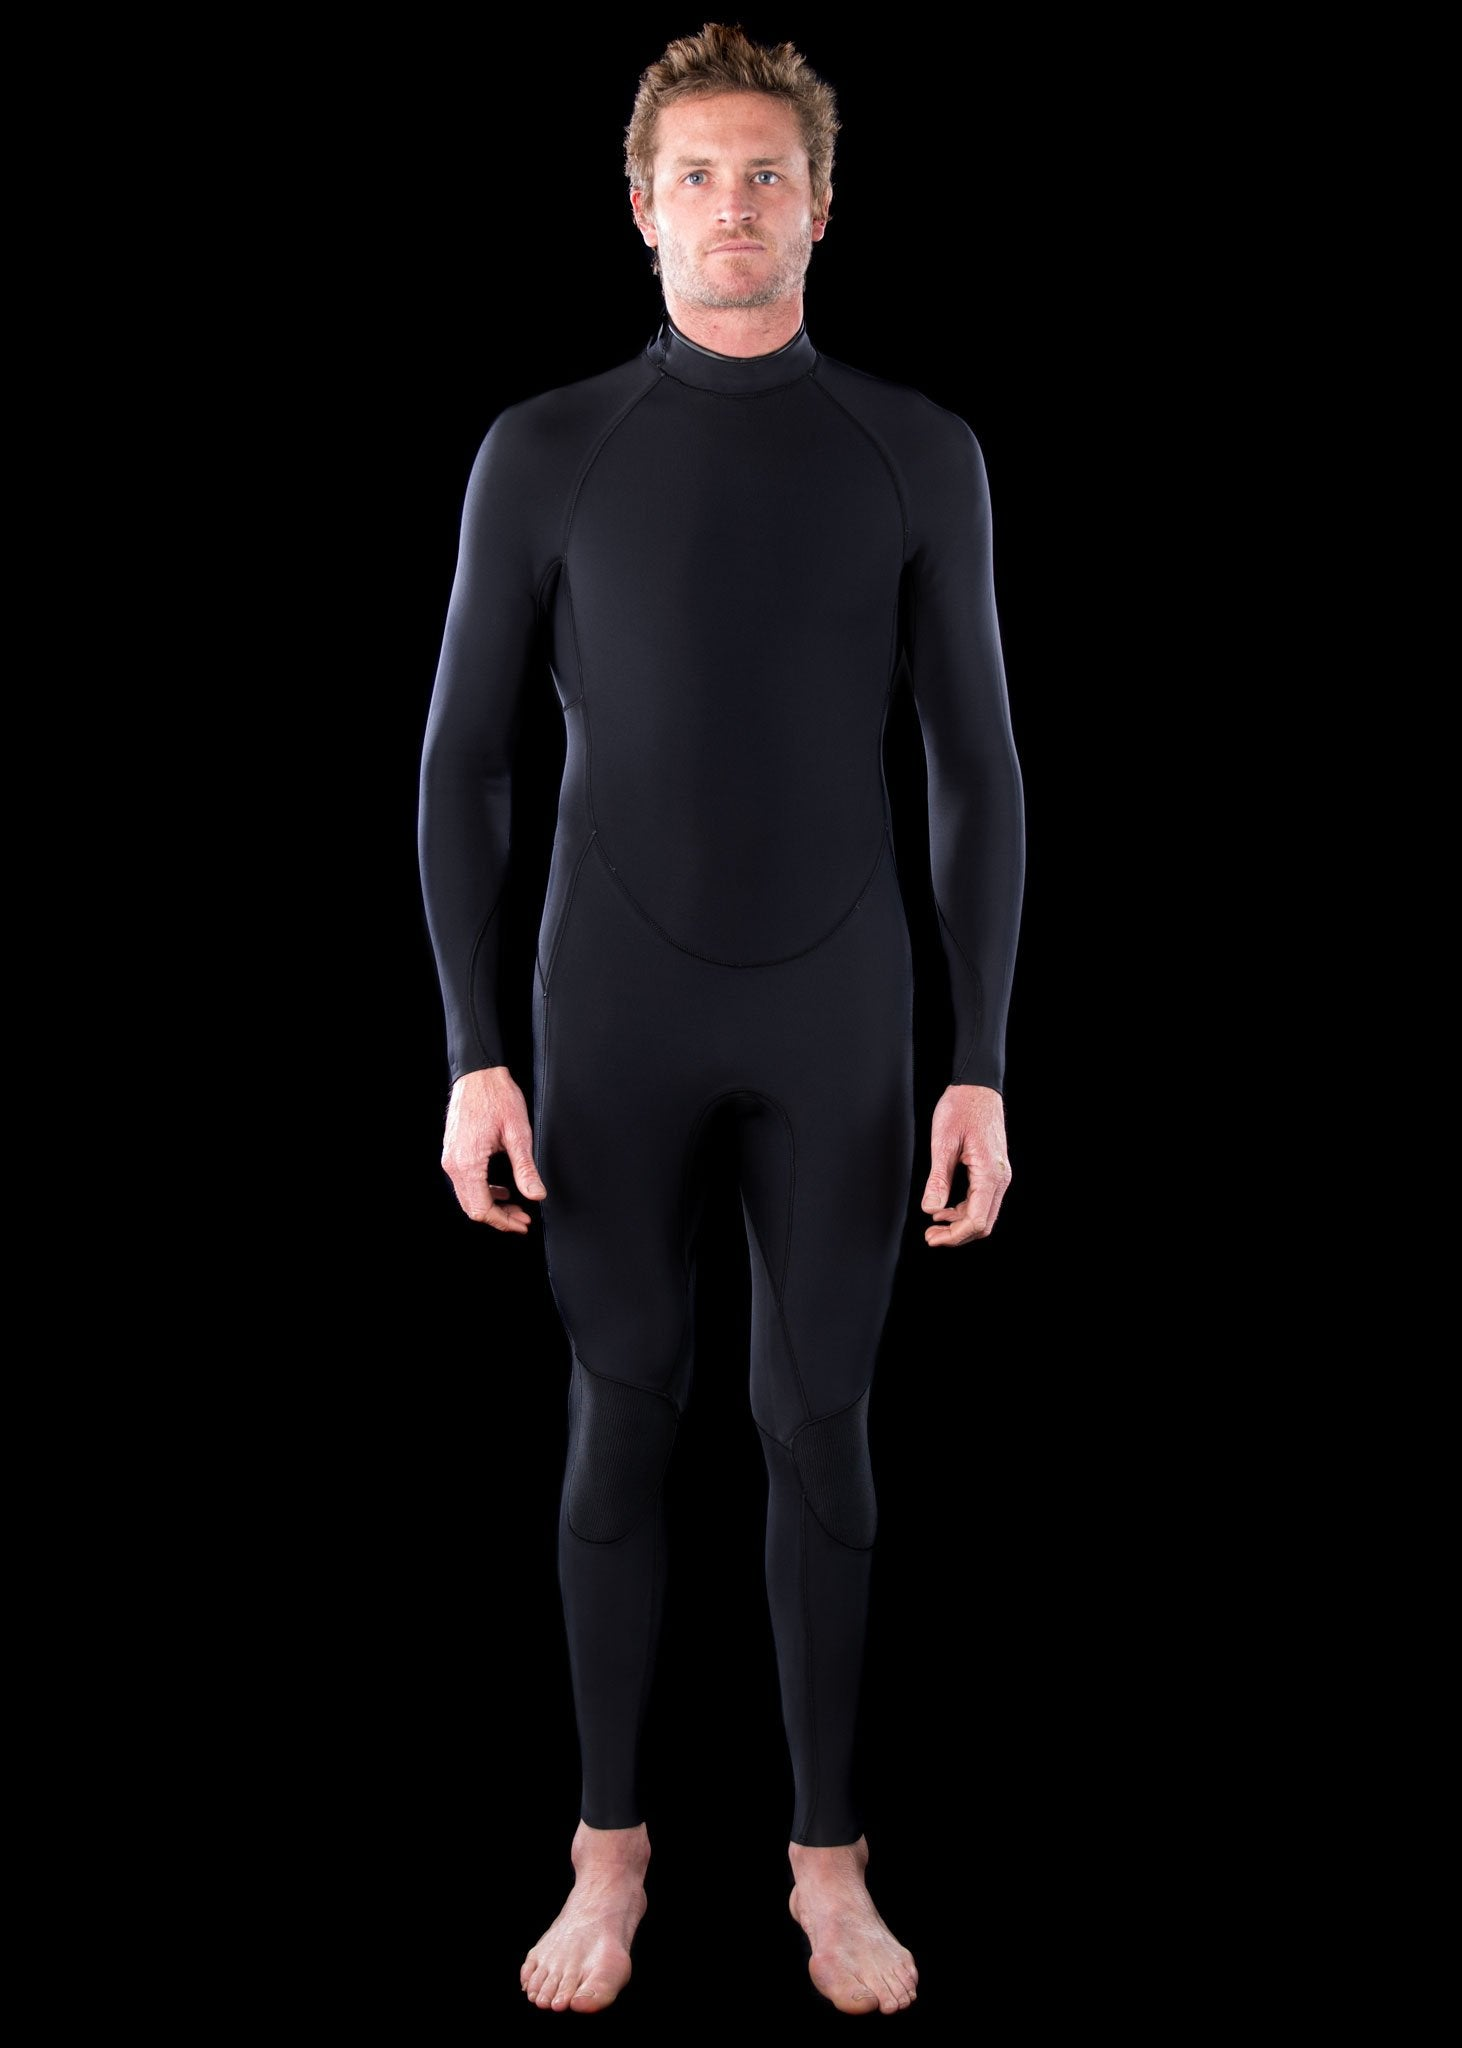 055f456e2c1 needessentials mens 3 2 premium Back Zip Wetsuit